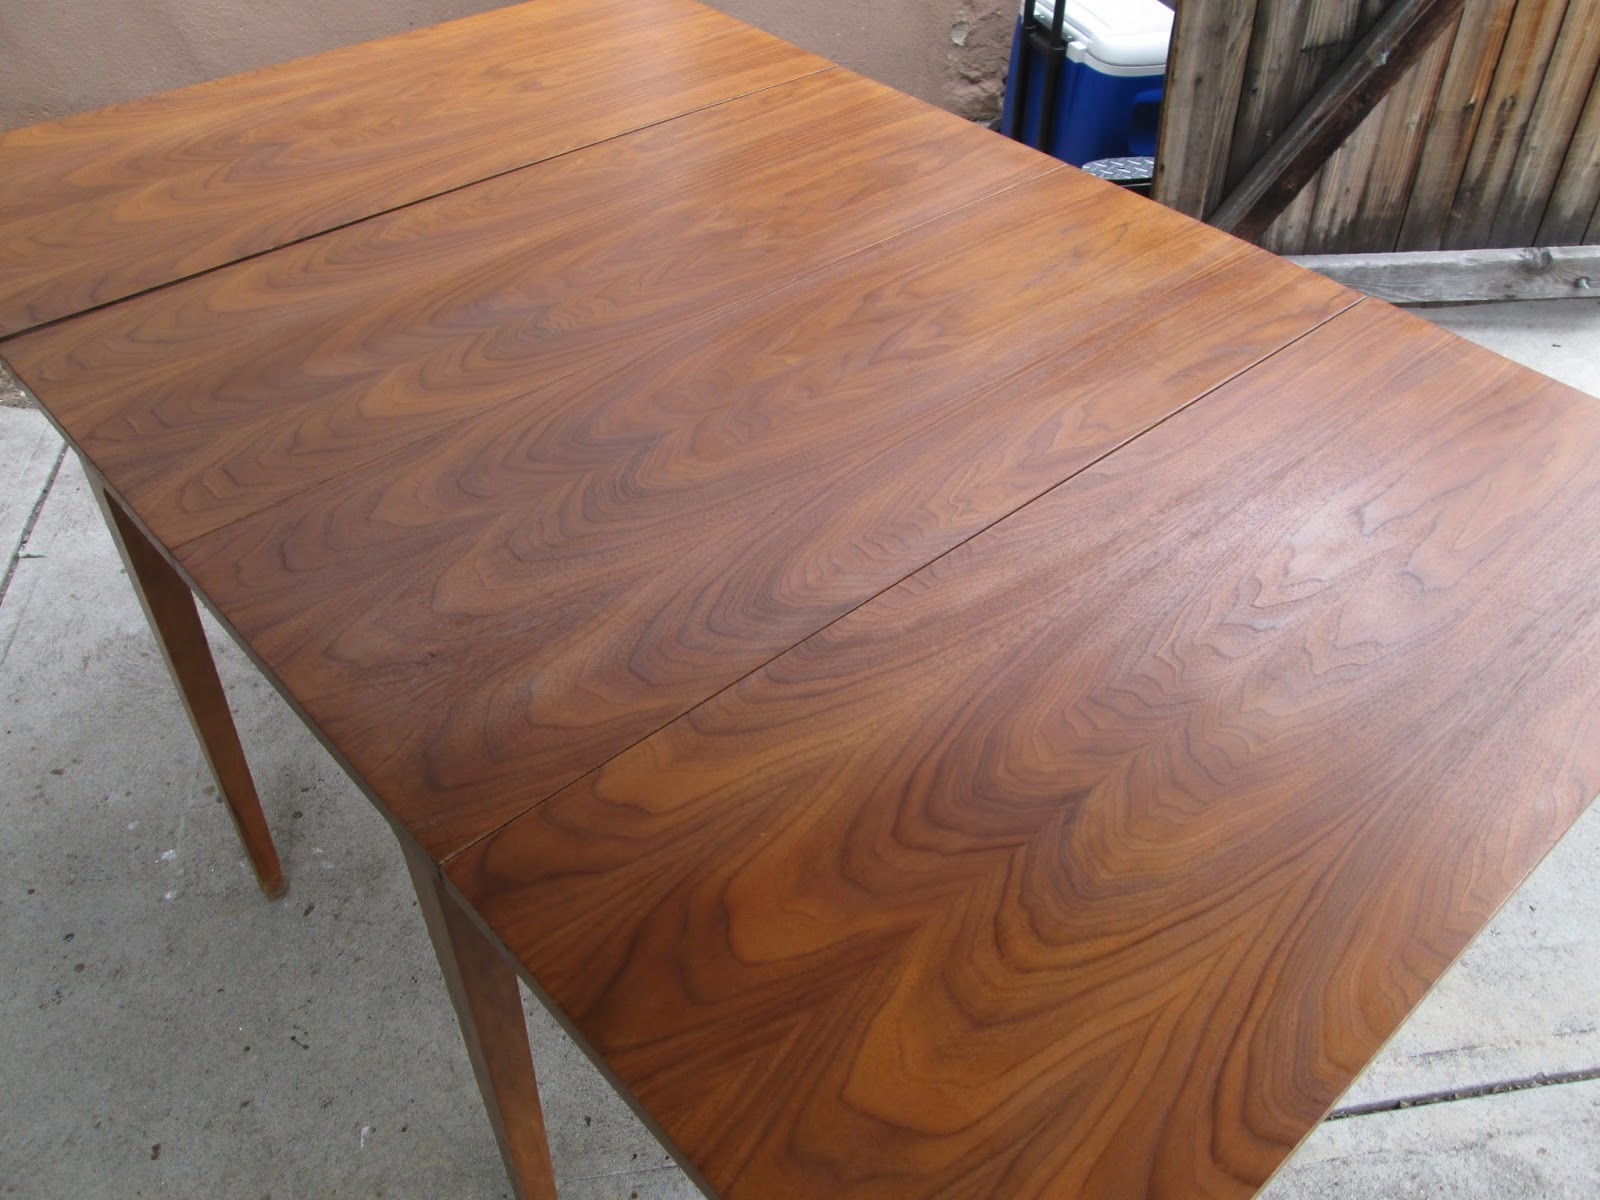 New Mid Century Dining Drop Leaf Table SOLD